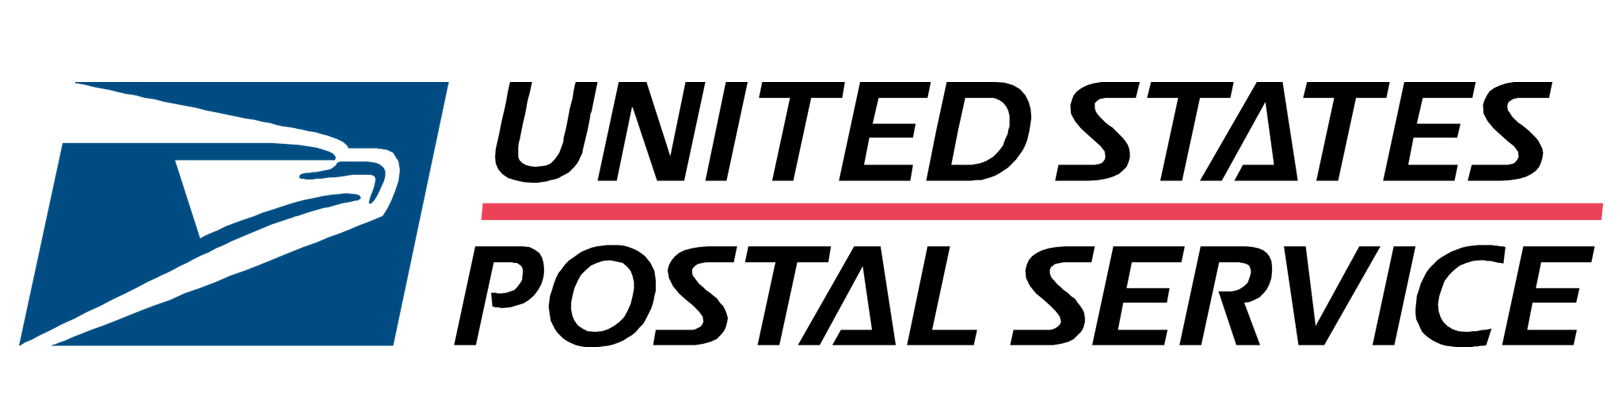 US Post Office Holidays 2018 – Post Office Holidays